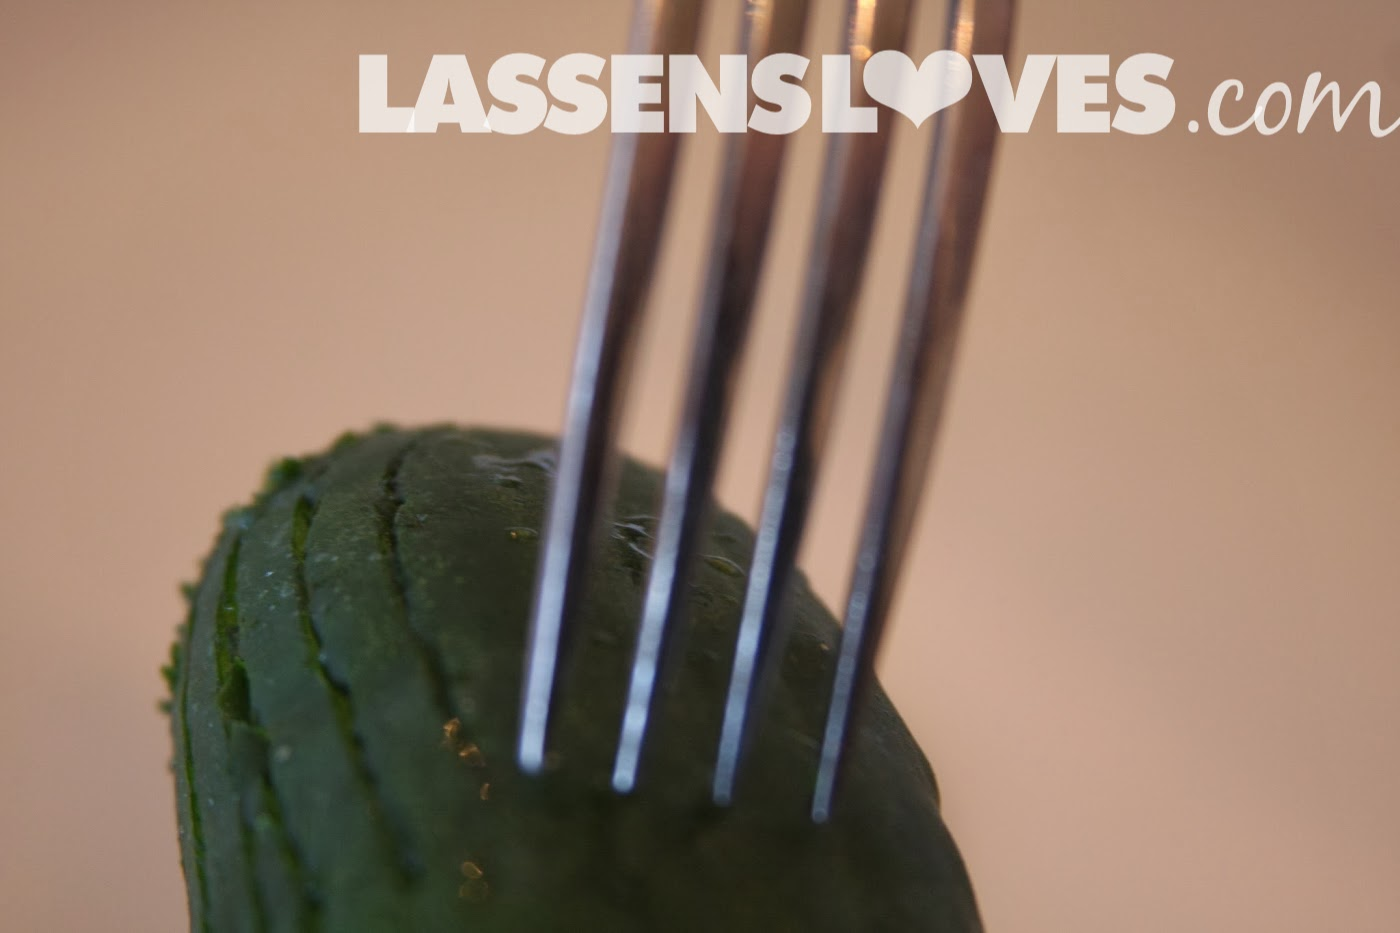 lassensloves.com, Lassen's, Lassens, Summer+drinks, Rosemary+cucumber+limeade